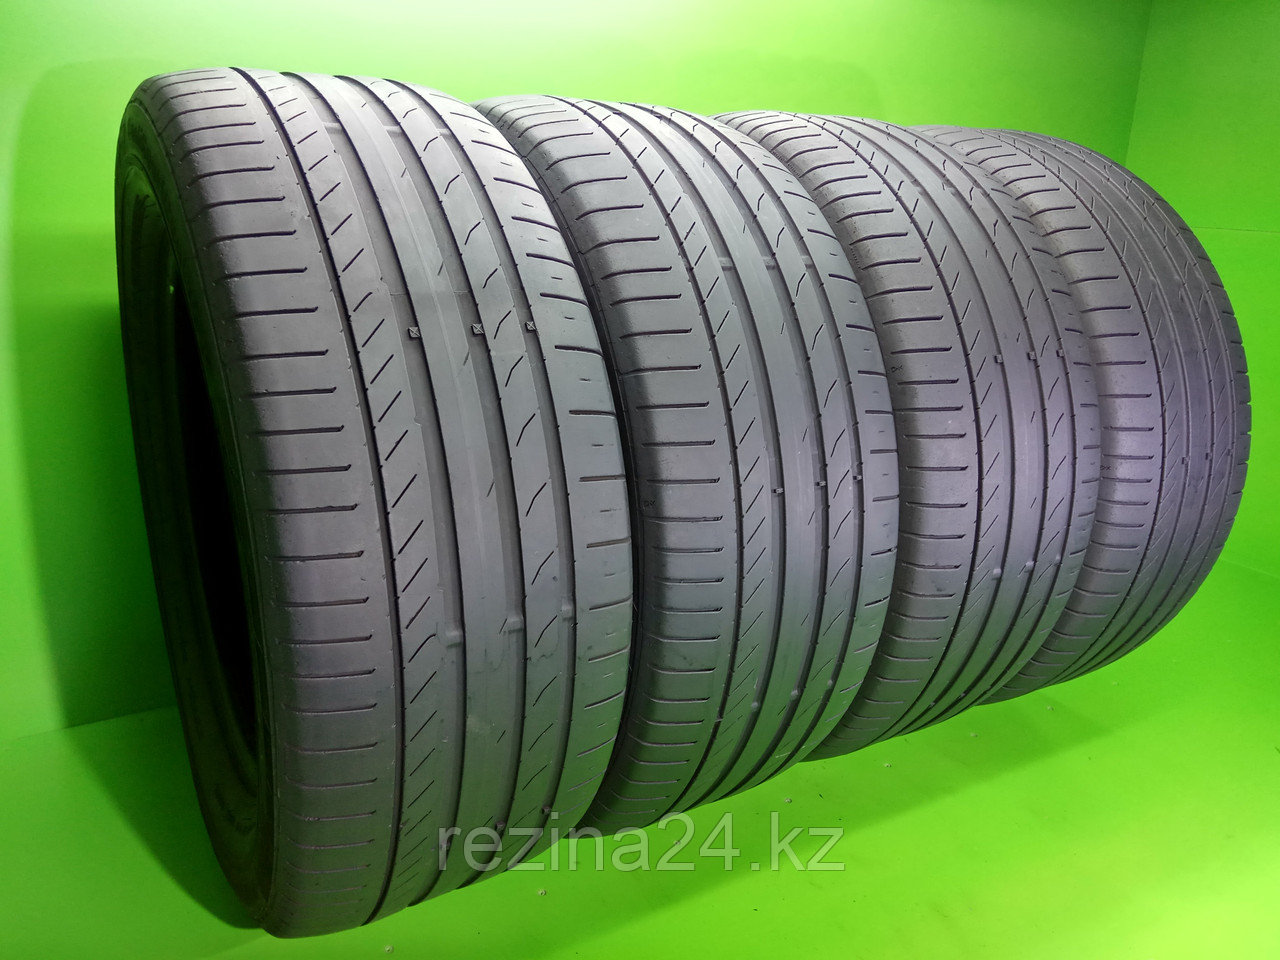 255/55 R 18 (105W) CONTINENTAL Conti Sport Contact 5  летние б/у шины